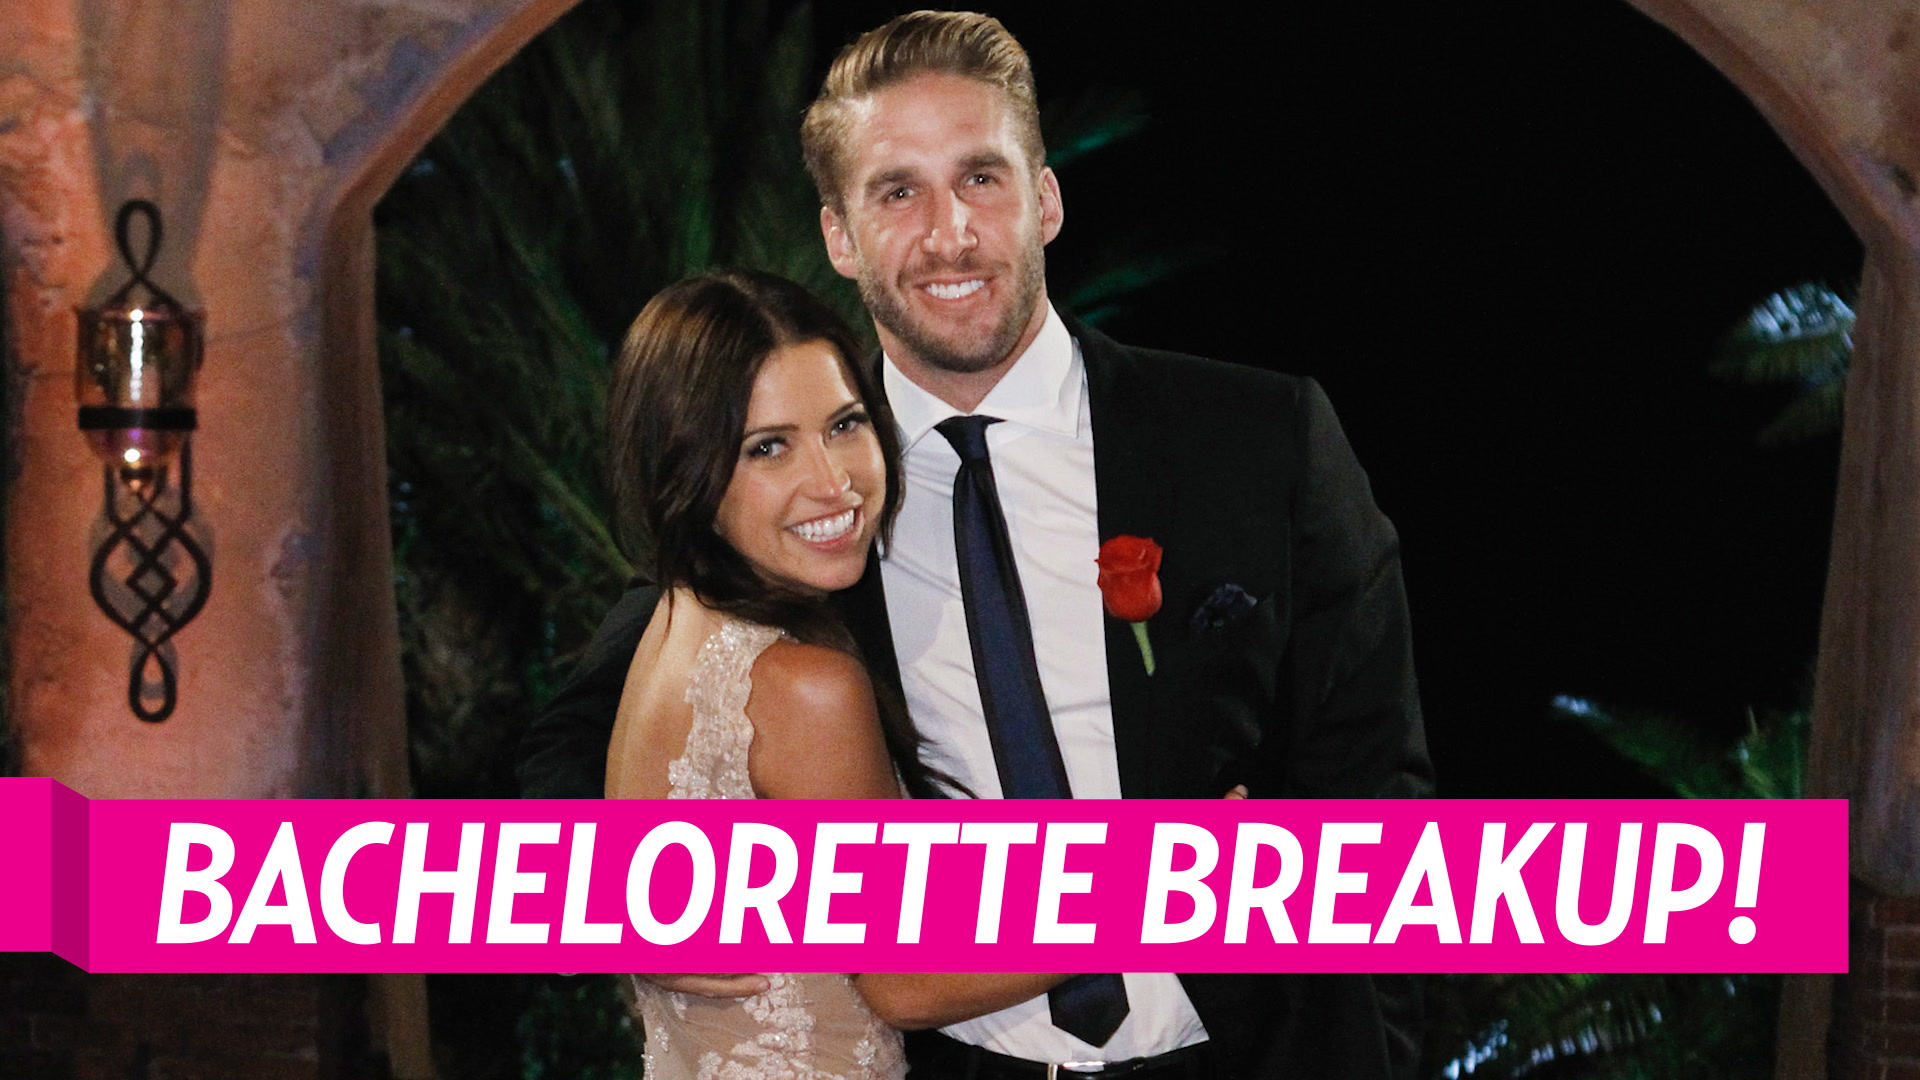 Kaitlyn Bristowe And Shawn Booth Split After 3 Years